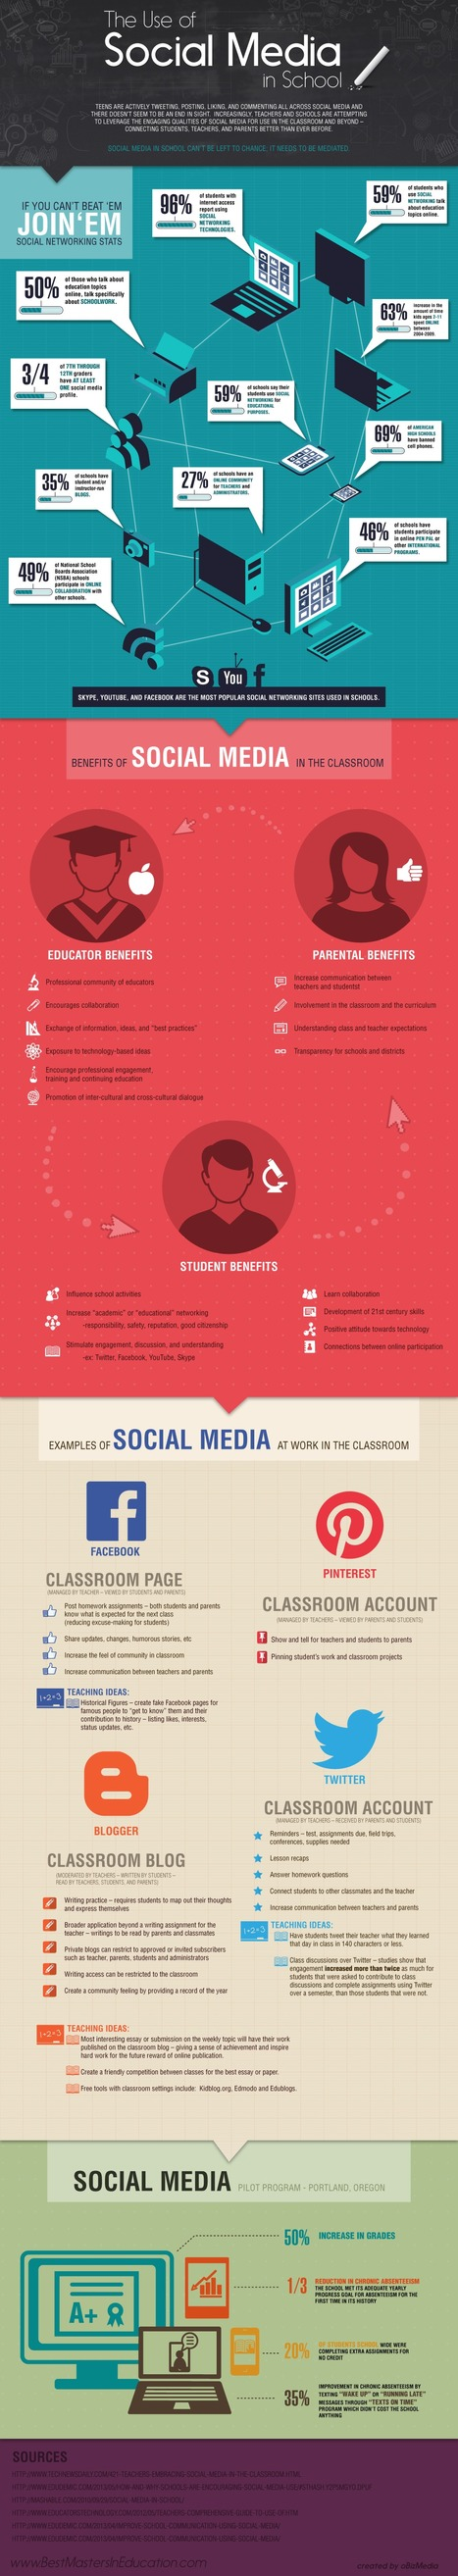 Social Media 101: Is There a Place For Social Media in Classrooms? [Infographic] | Personal Learning Network | Scoop.it